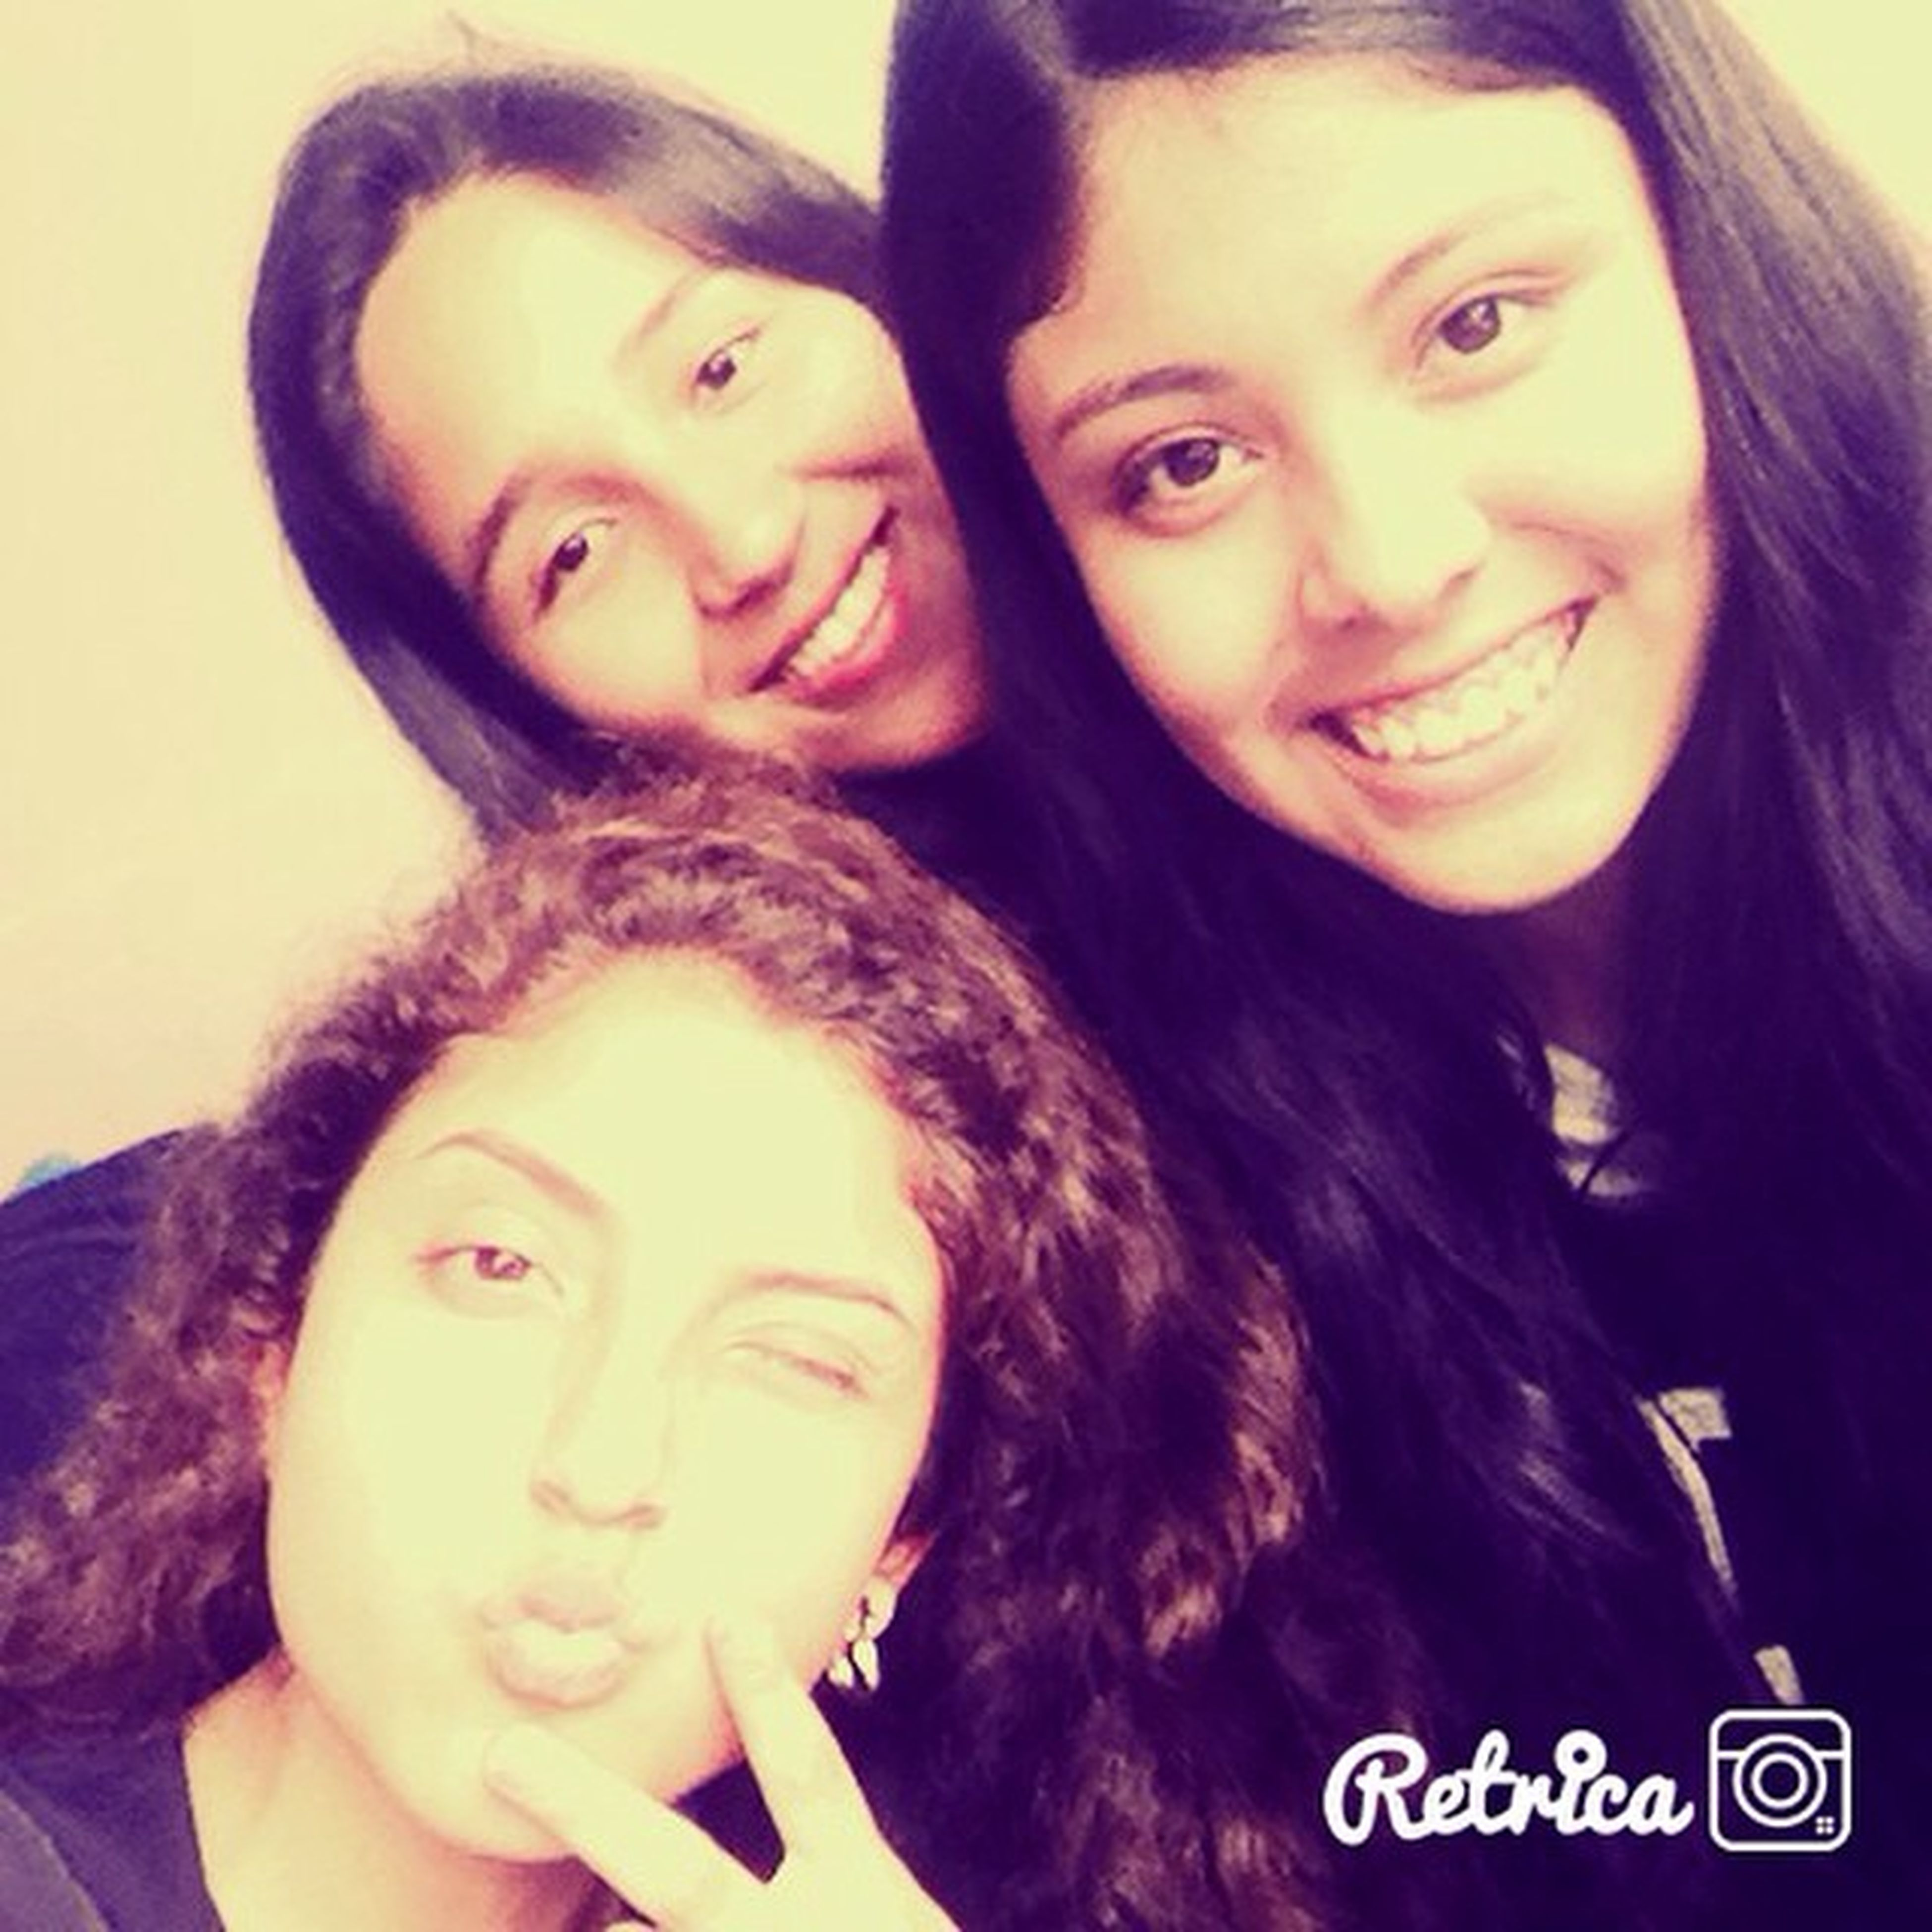 Chikis  Prom Friends Yolo Love Sexy Smile Sweet Happy Instagram Retrica Indomables Fabulosas Famosas 🙅💁🙌❤️😘